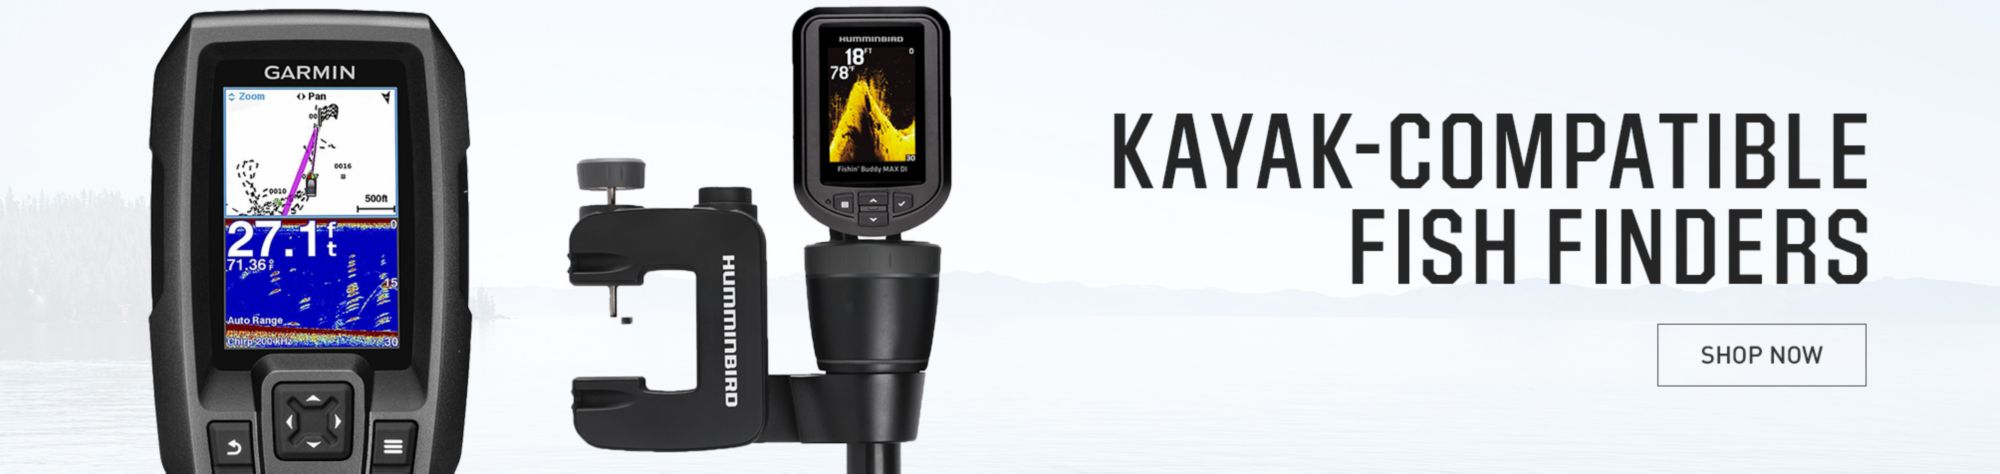 Kayak-Compatible Fish Finders